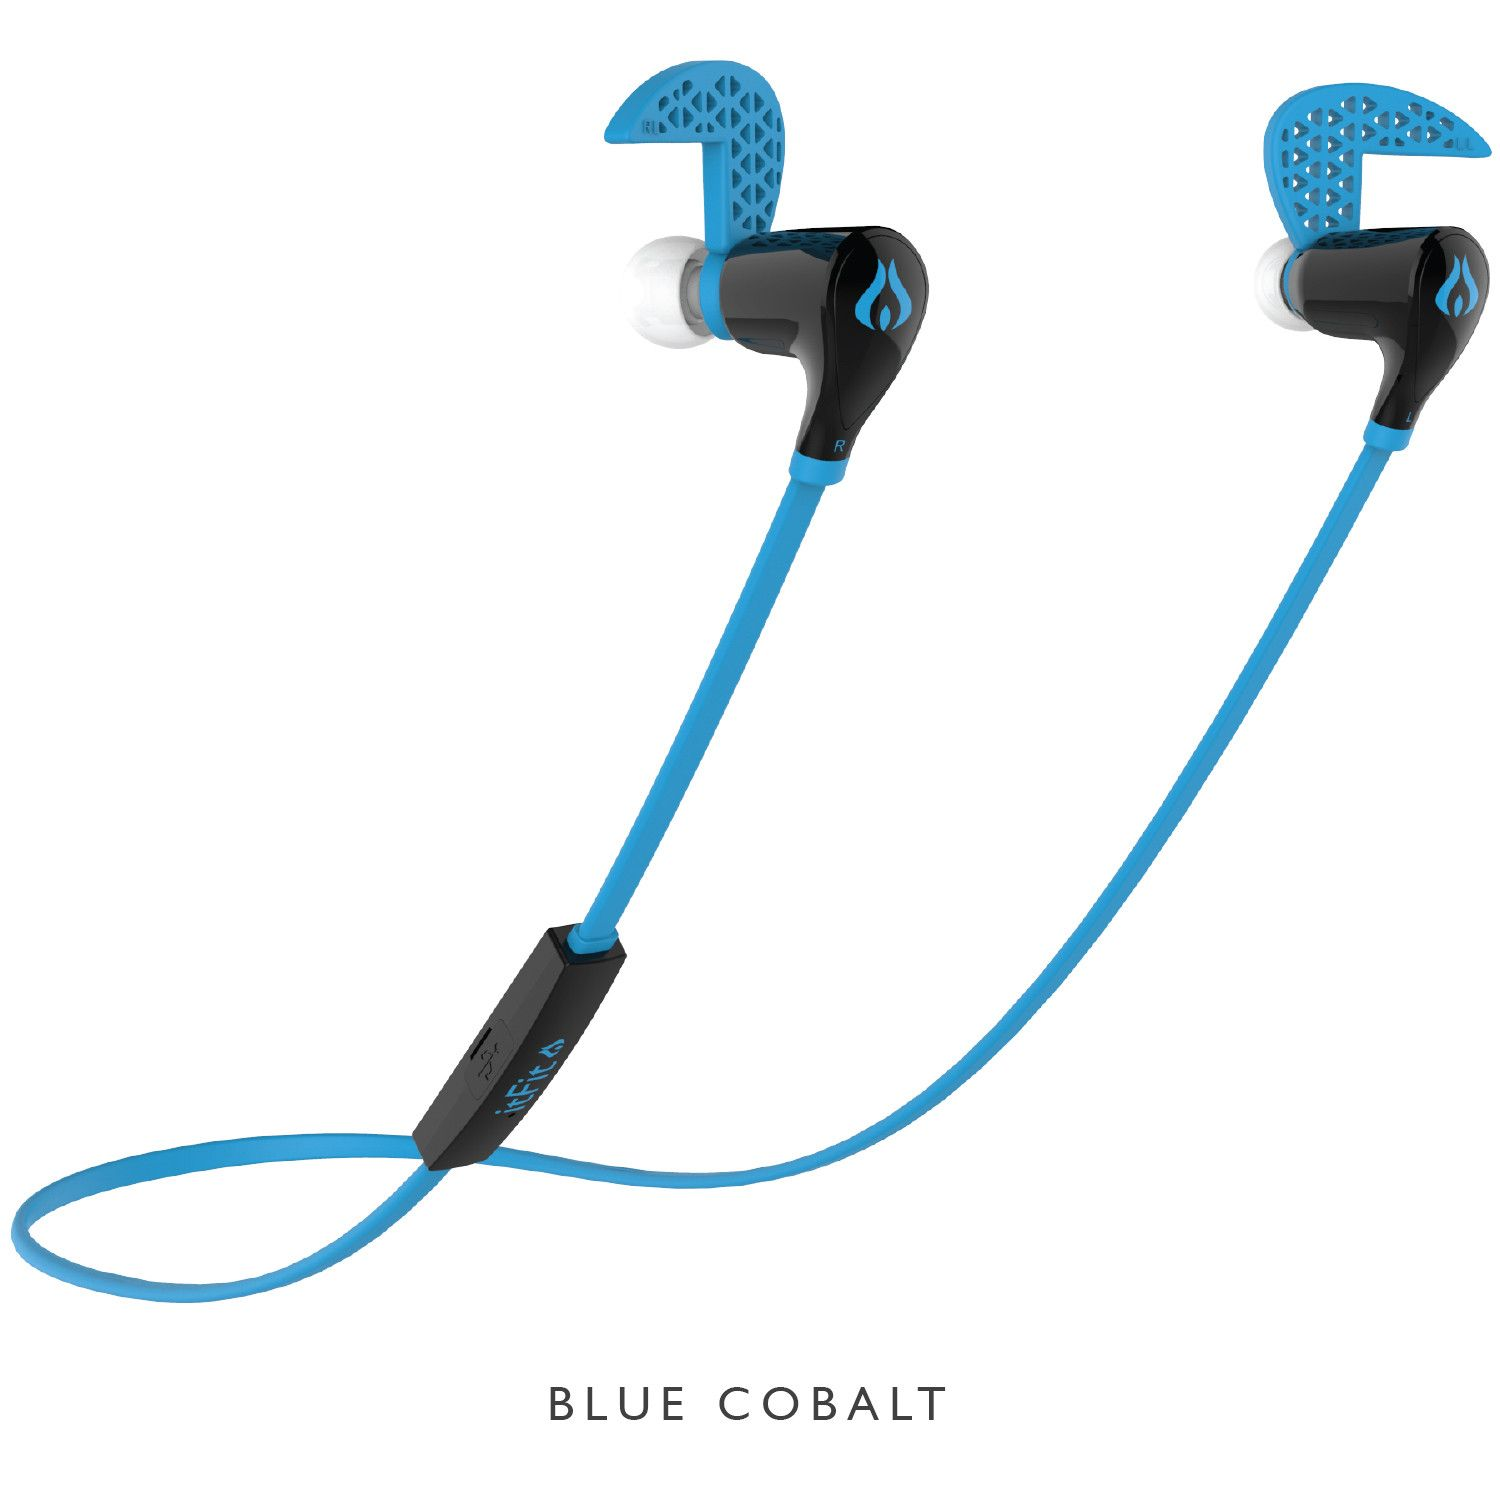 40 OFF + FREE SHIPPING! The world's best fitting earbuds